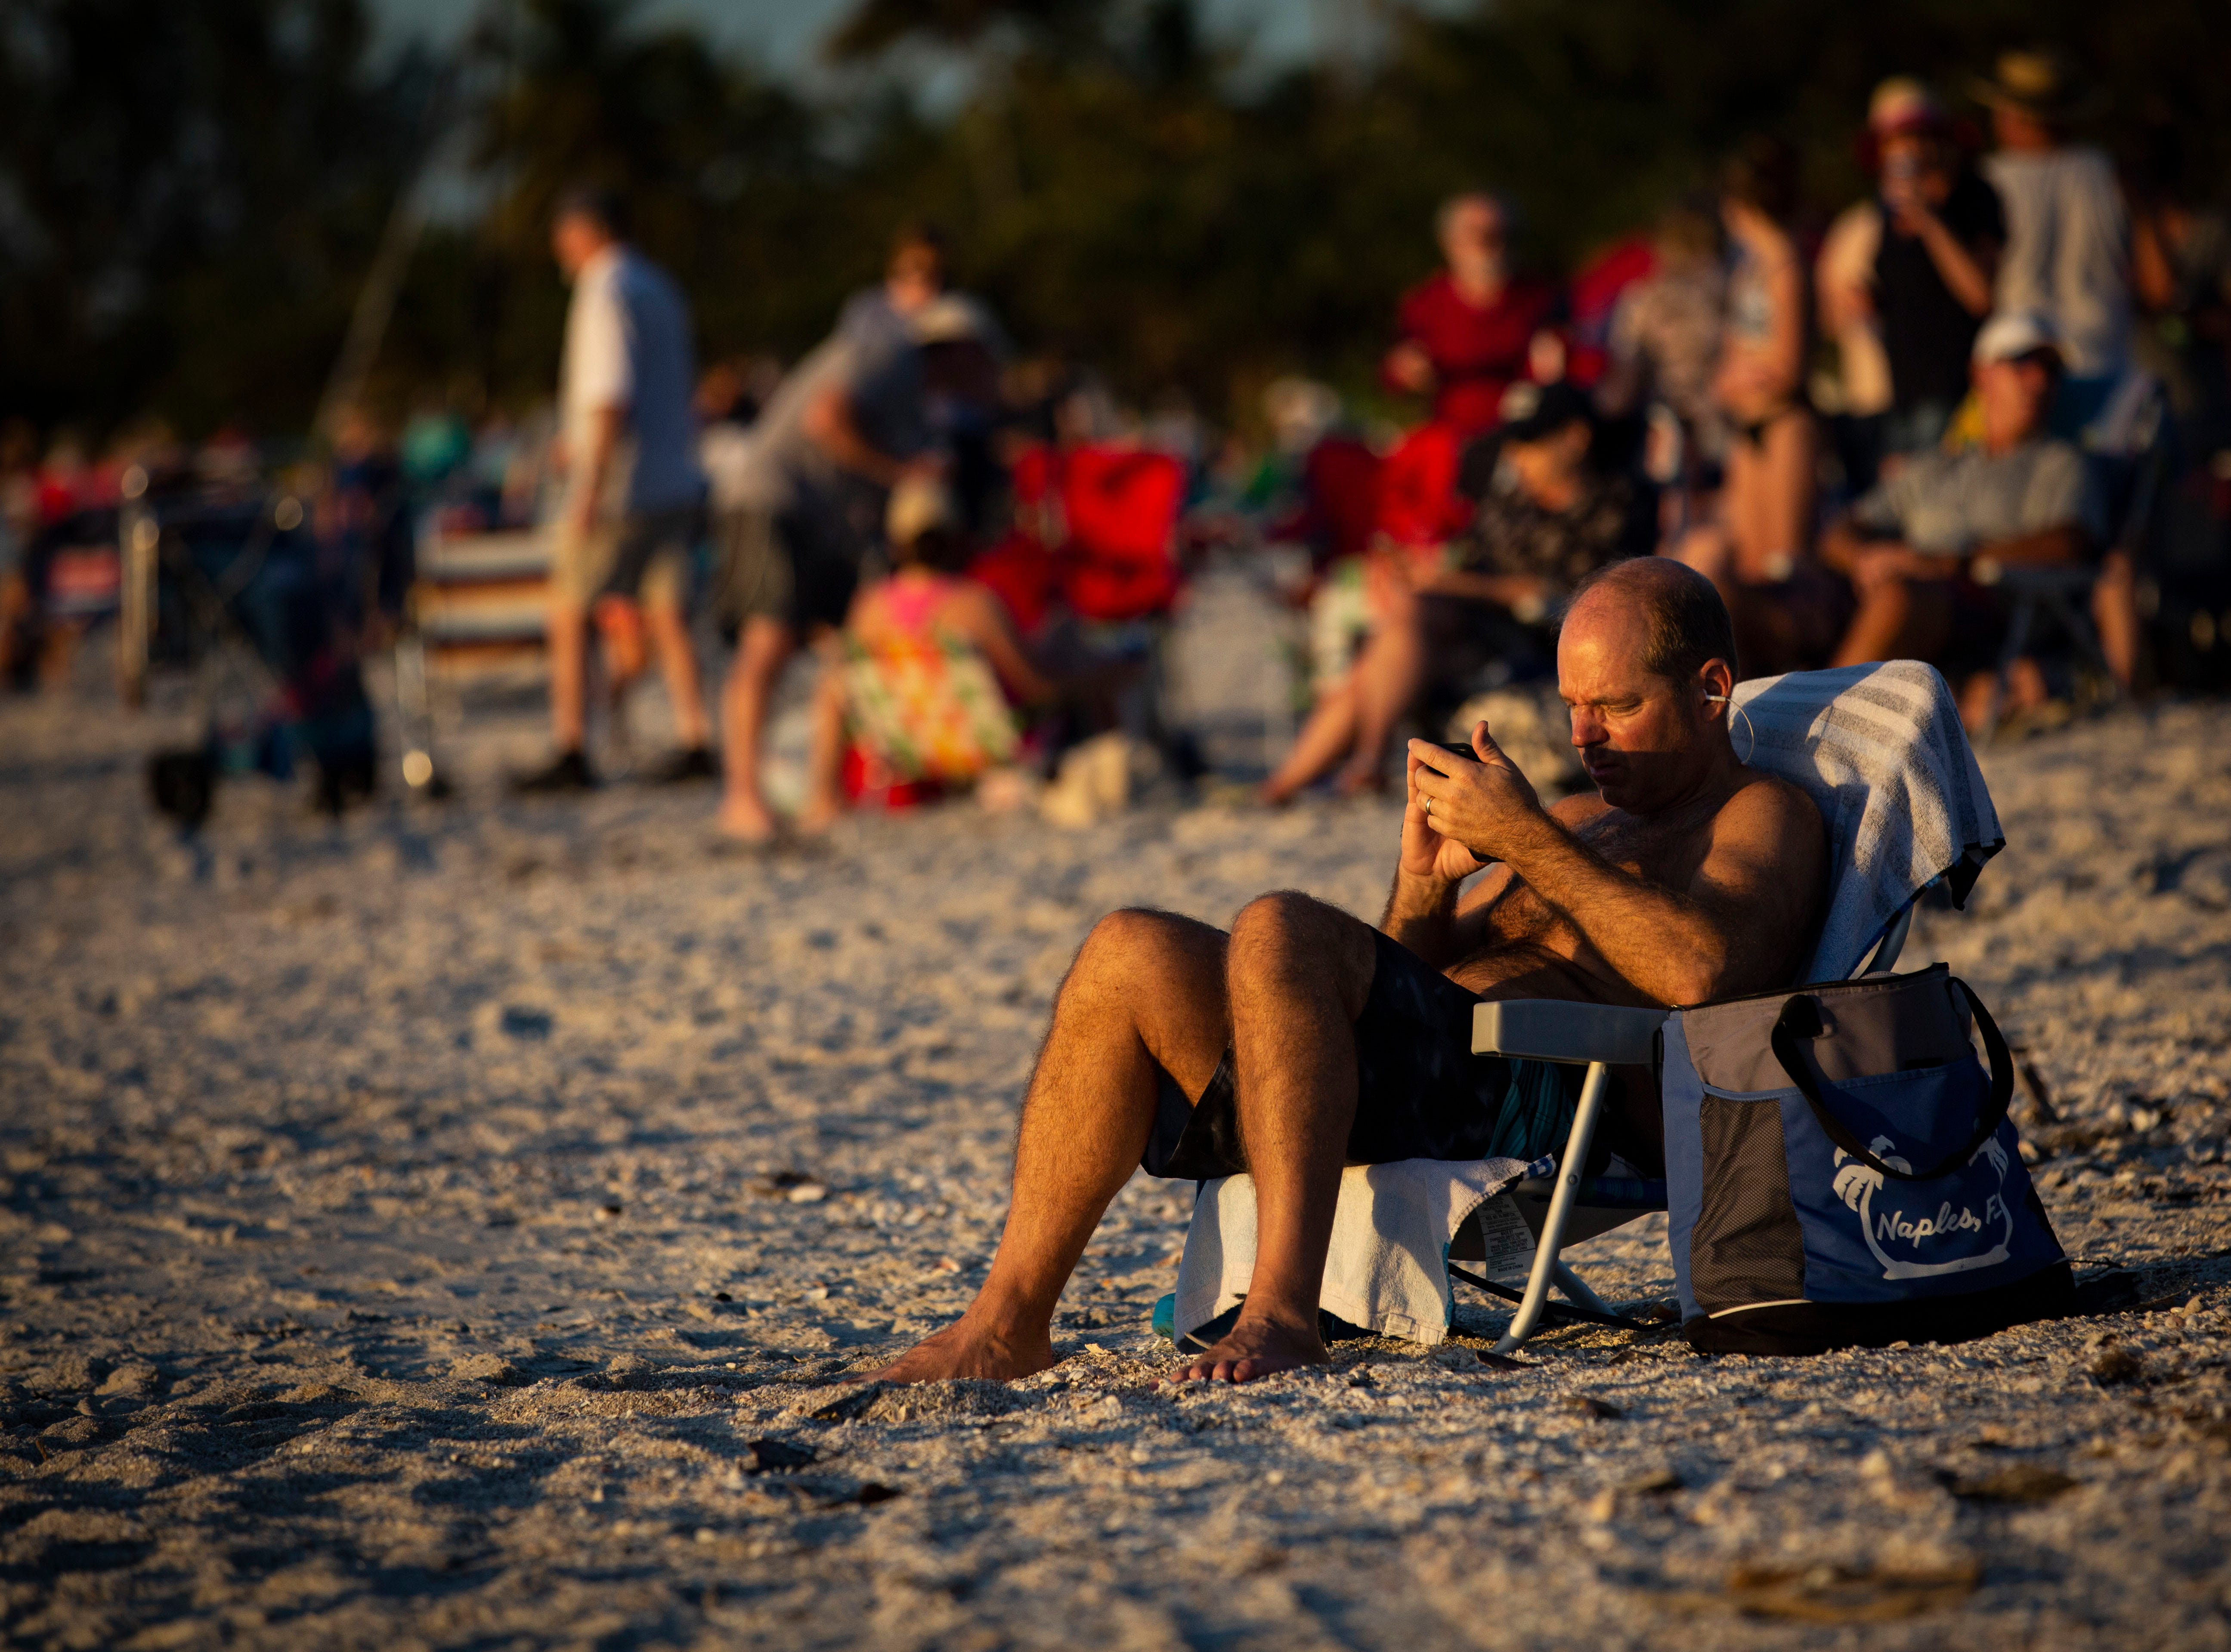 Thousands gather at Naples Pier overlooking the Gulf of Mexico, to celebrate the last day of the year enjoying the sun, the sand and the firework display put on by the City of Naples, with family and friends on Monday, Dec. 31, 2018.